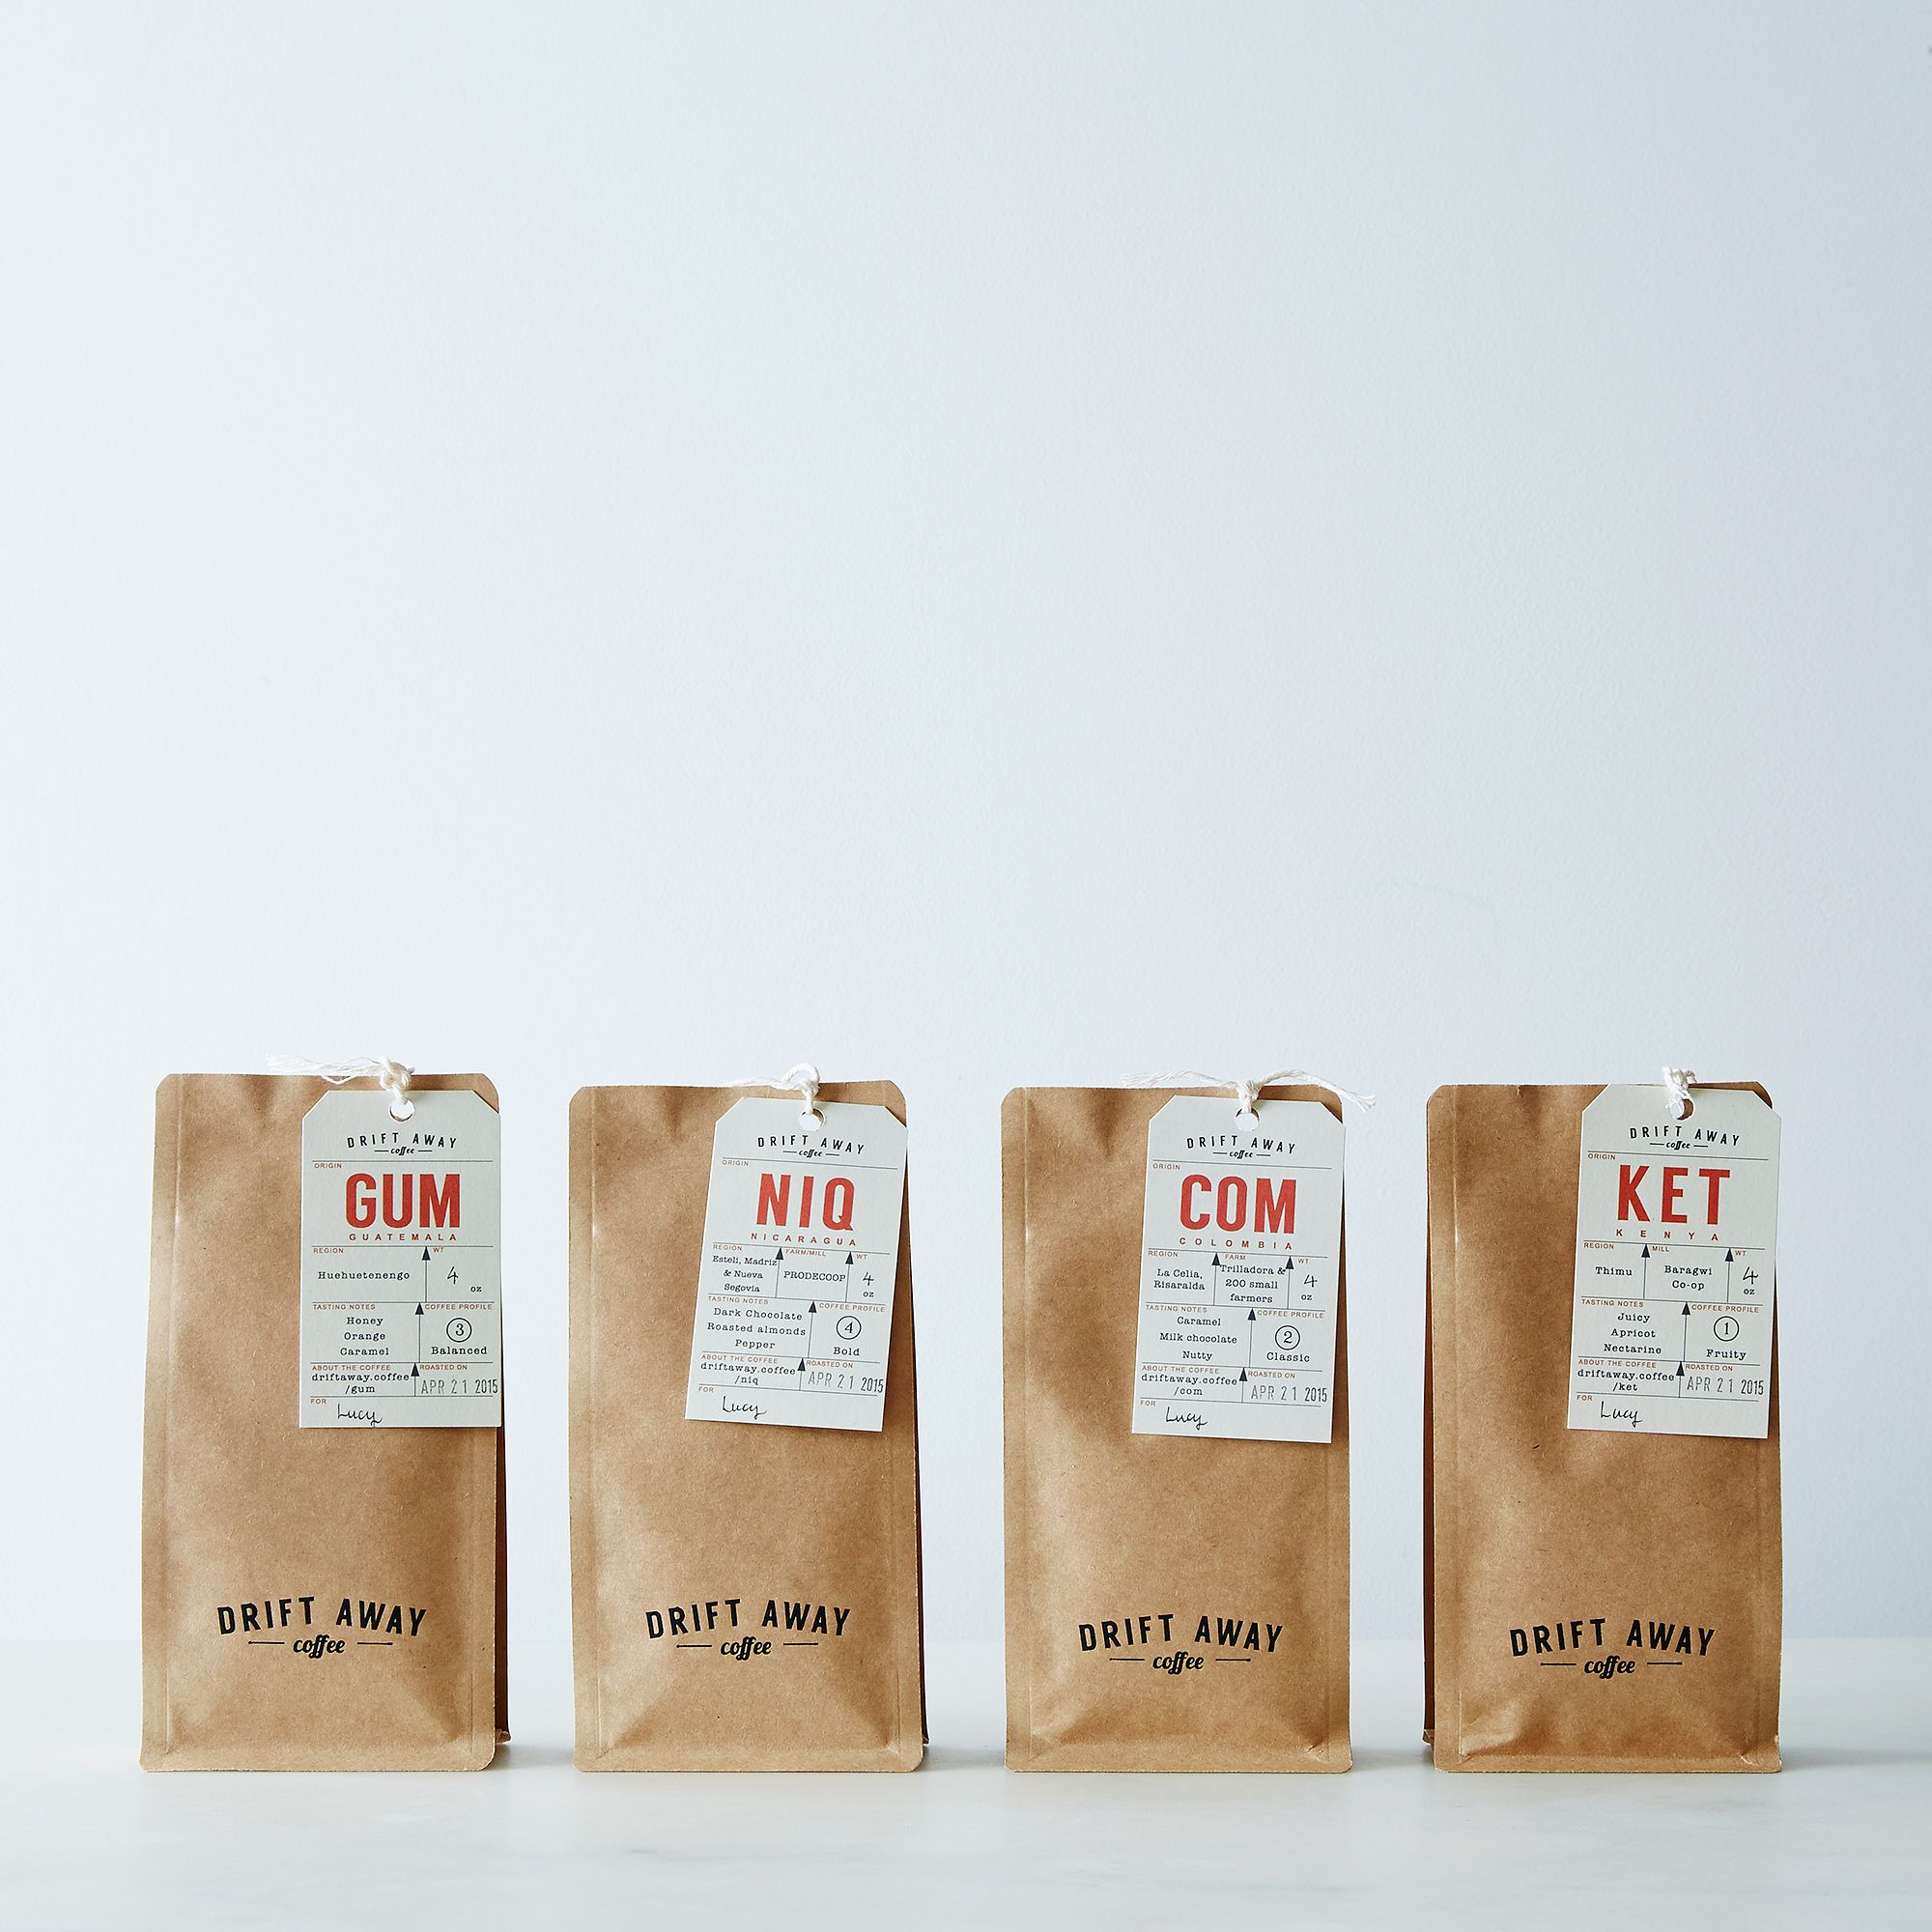 Driftaway Coffee Driftaway Single Origin Coffee Sampler (Set of 4)